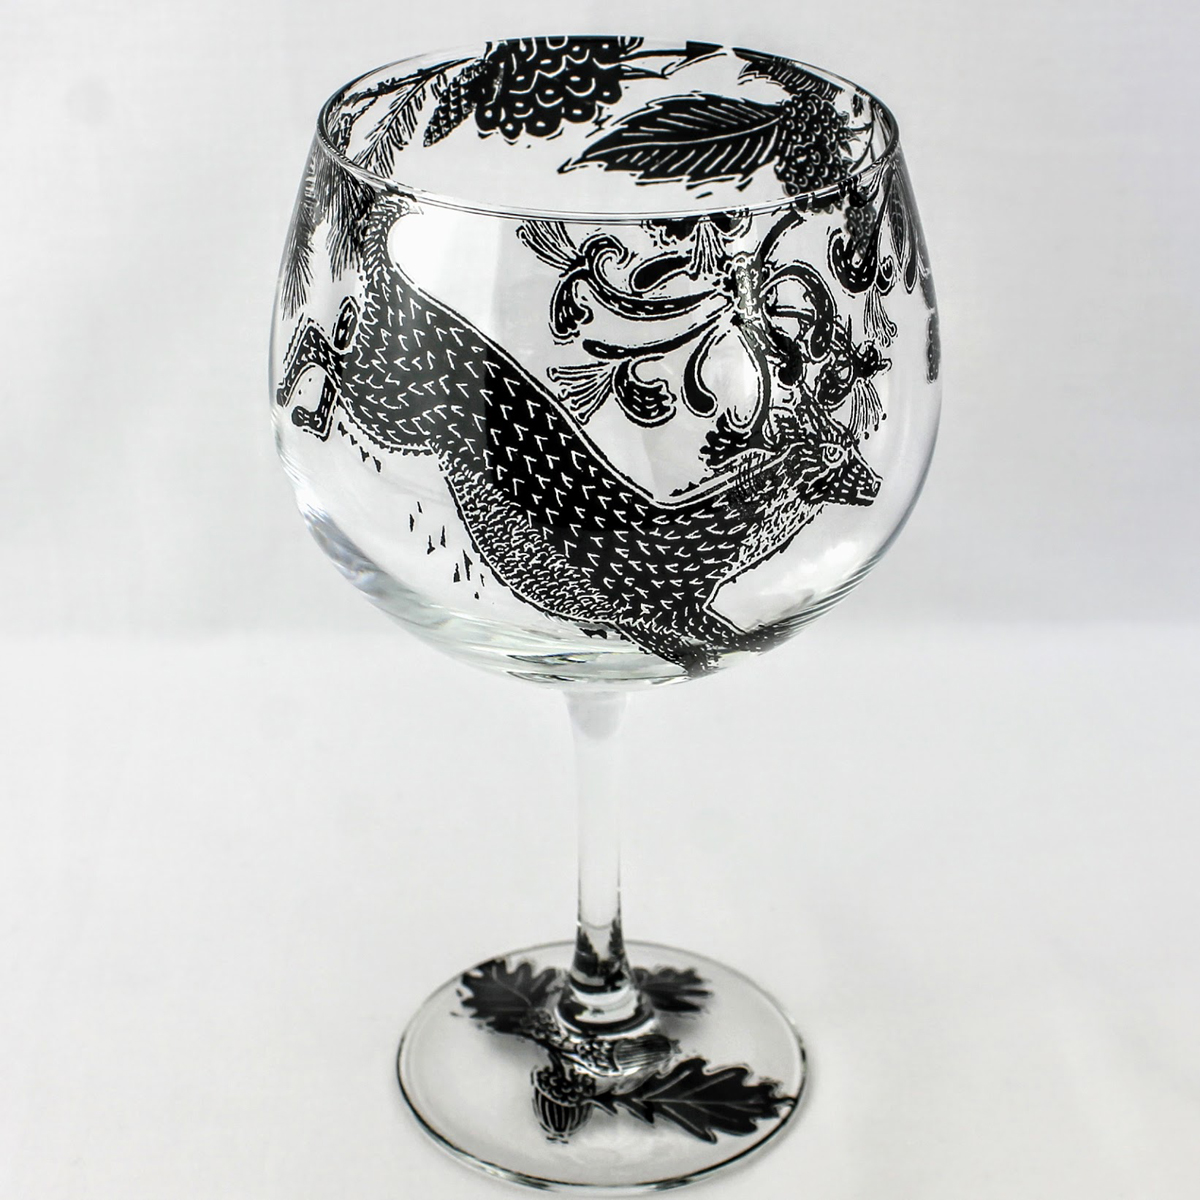 G & T glass wild wood scene with leaping deer